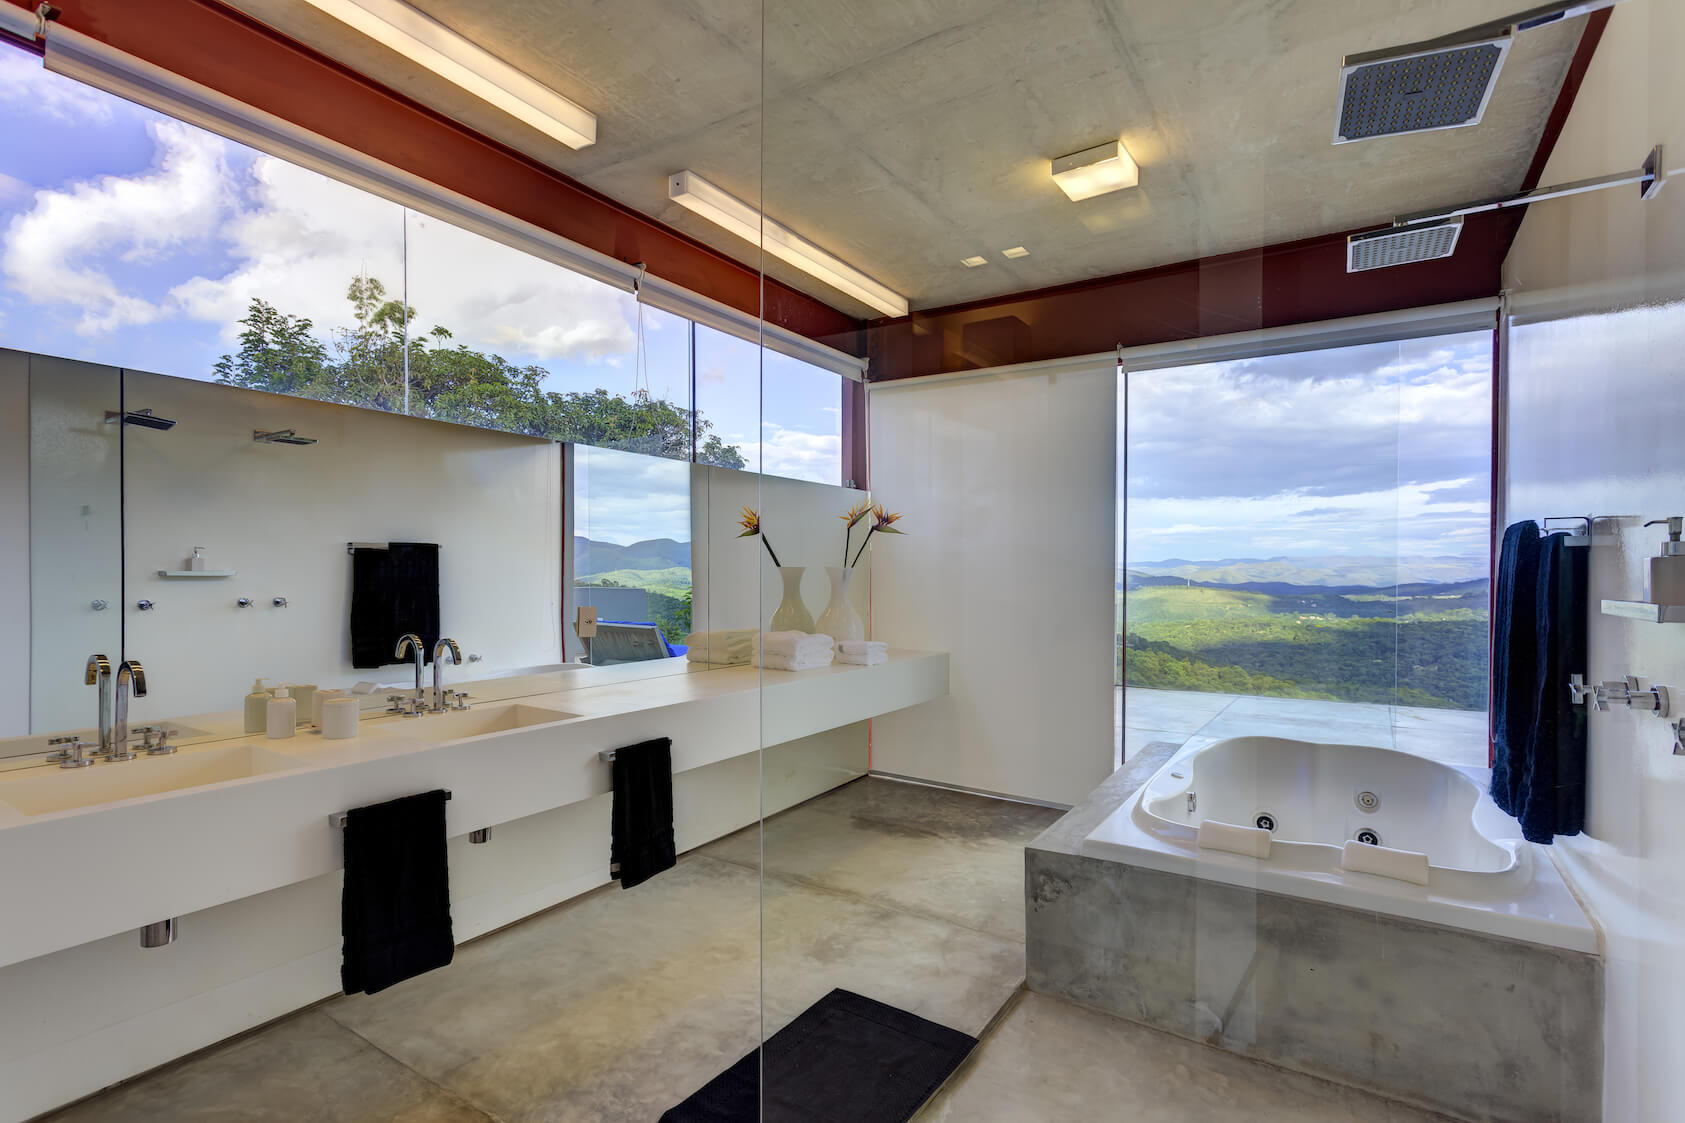 Primary bath reiterates the minimalist, white theme with floating countertop backed by wall-length mirror, seamless glass shower, and large jacuzzi tub next to balcony access.